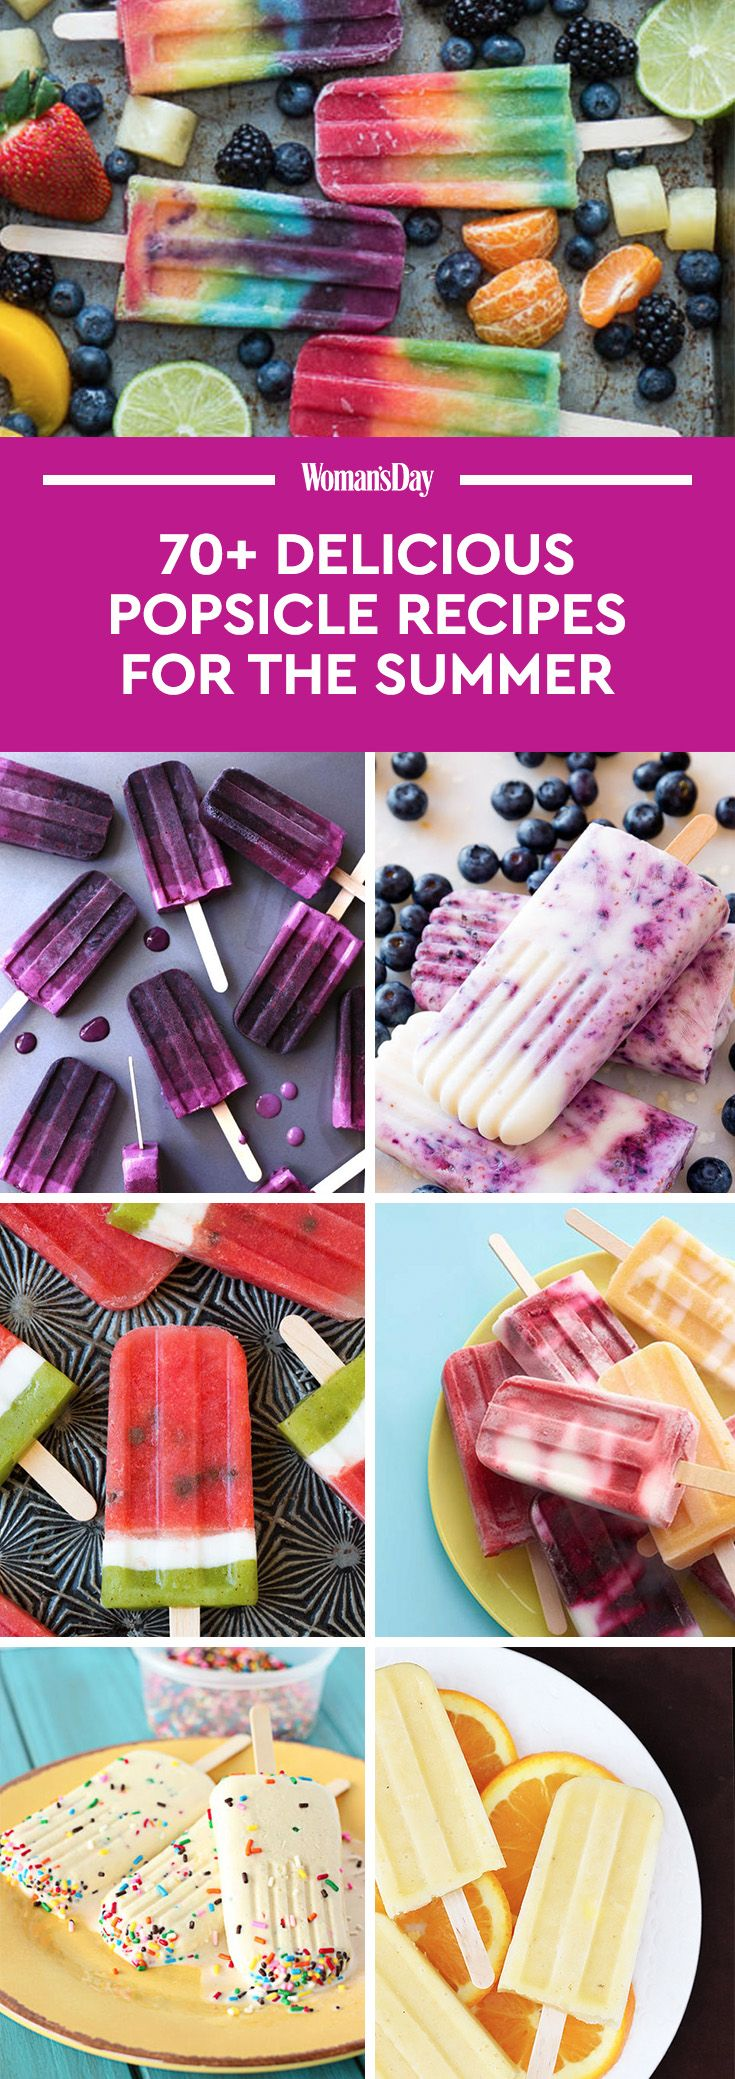 Save these summer popsicle recipesfor later by pinning this image, and followWoman's DayonPinterestfor more.